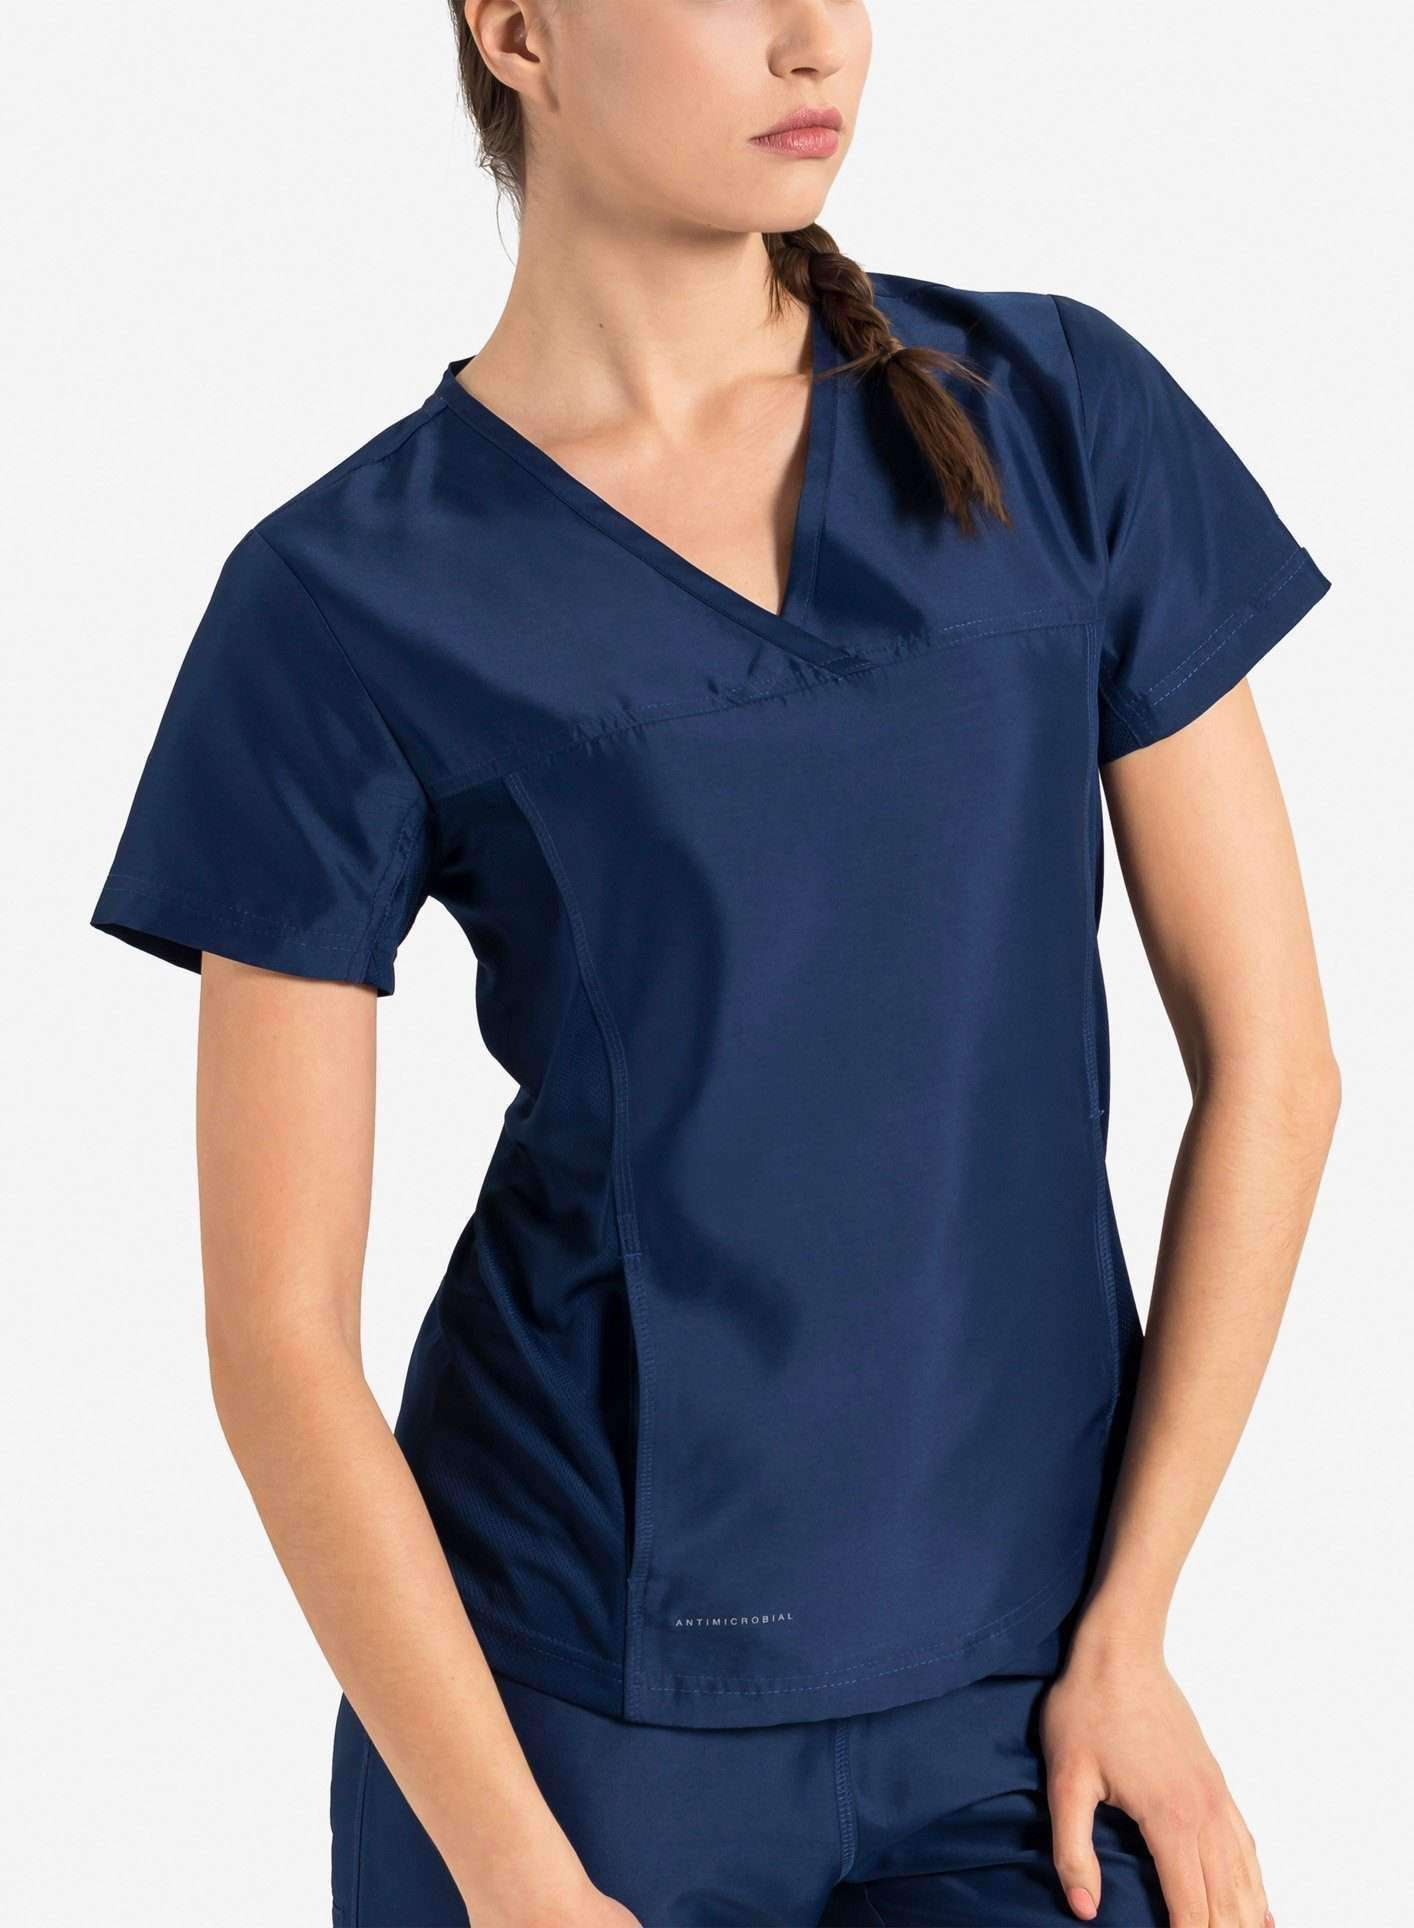 womens Elements short sleeve hidden pocket scrub top navy blue